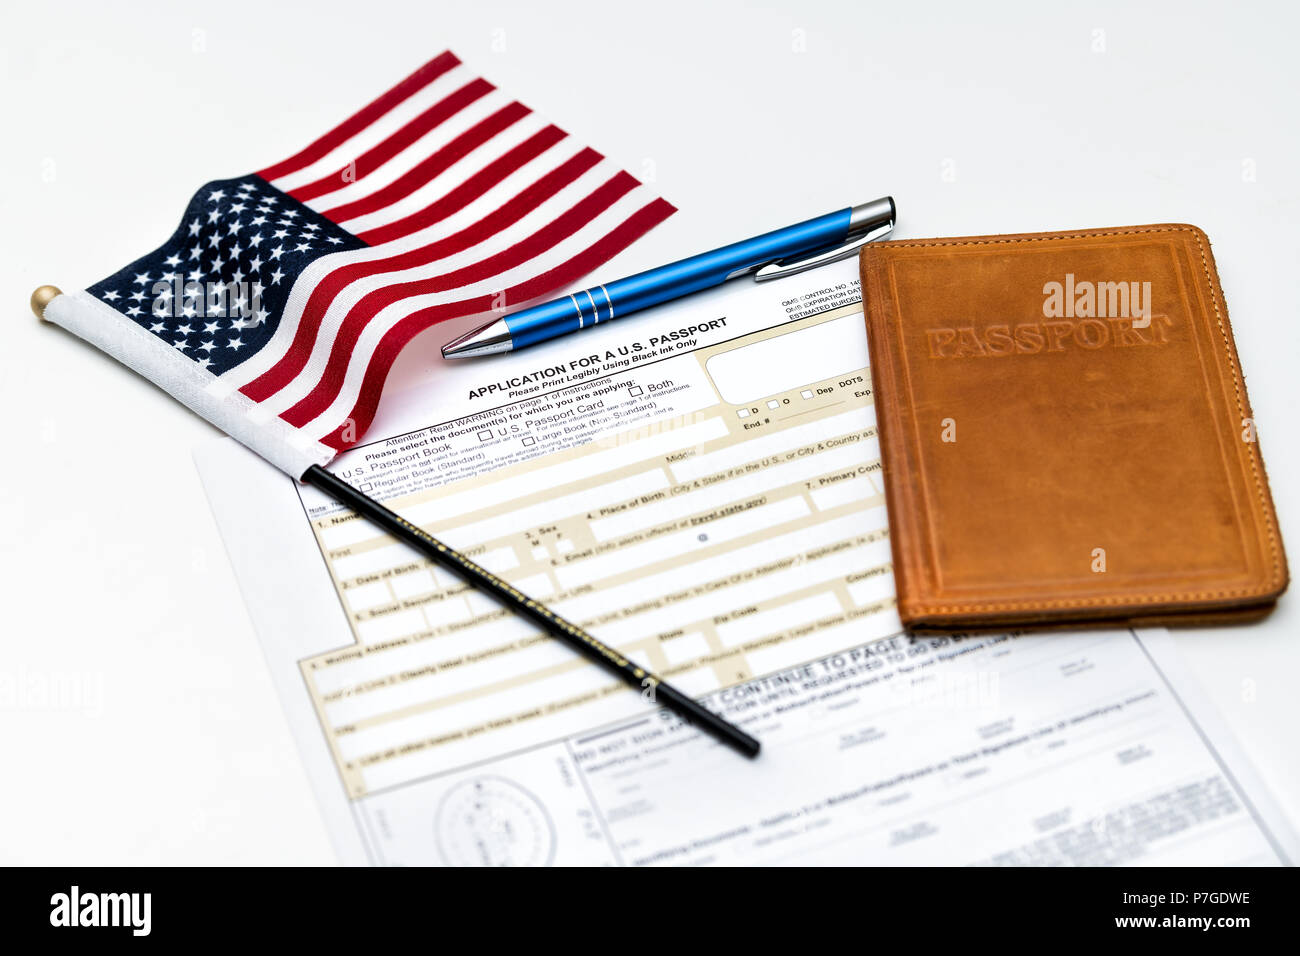 Fairfax, USA - April 11, 2018: U.S. Department of State application for US, American passport on table with pen, flag and passport case, cover - Stock Image